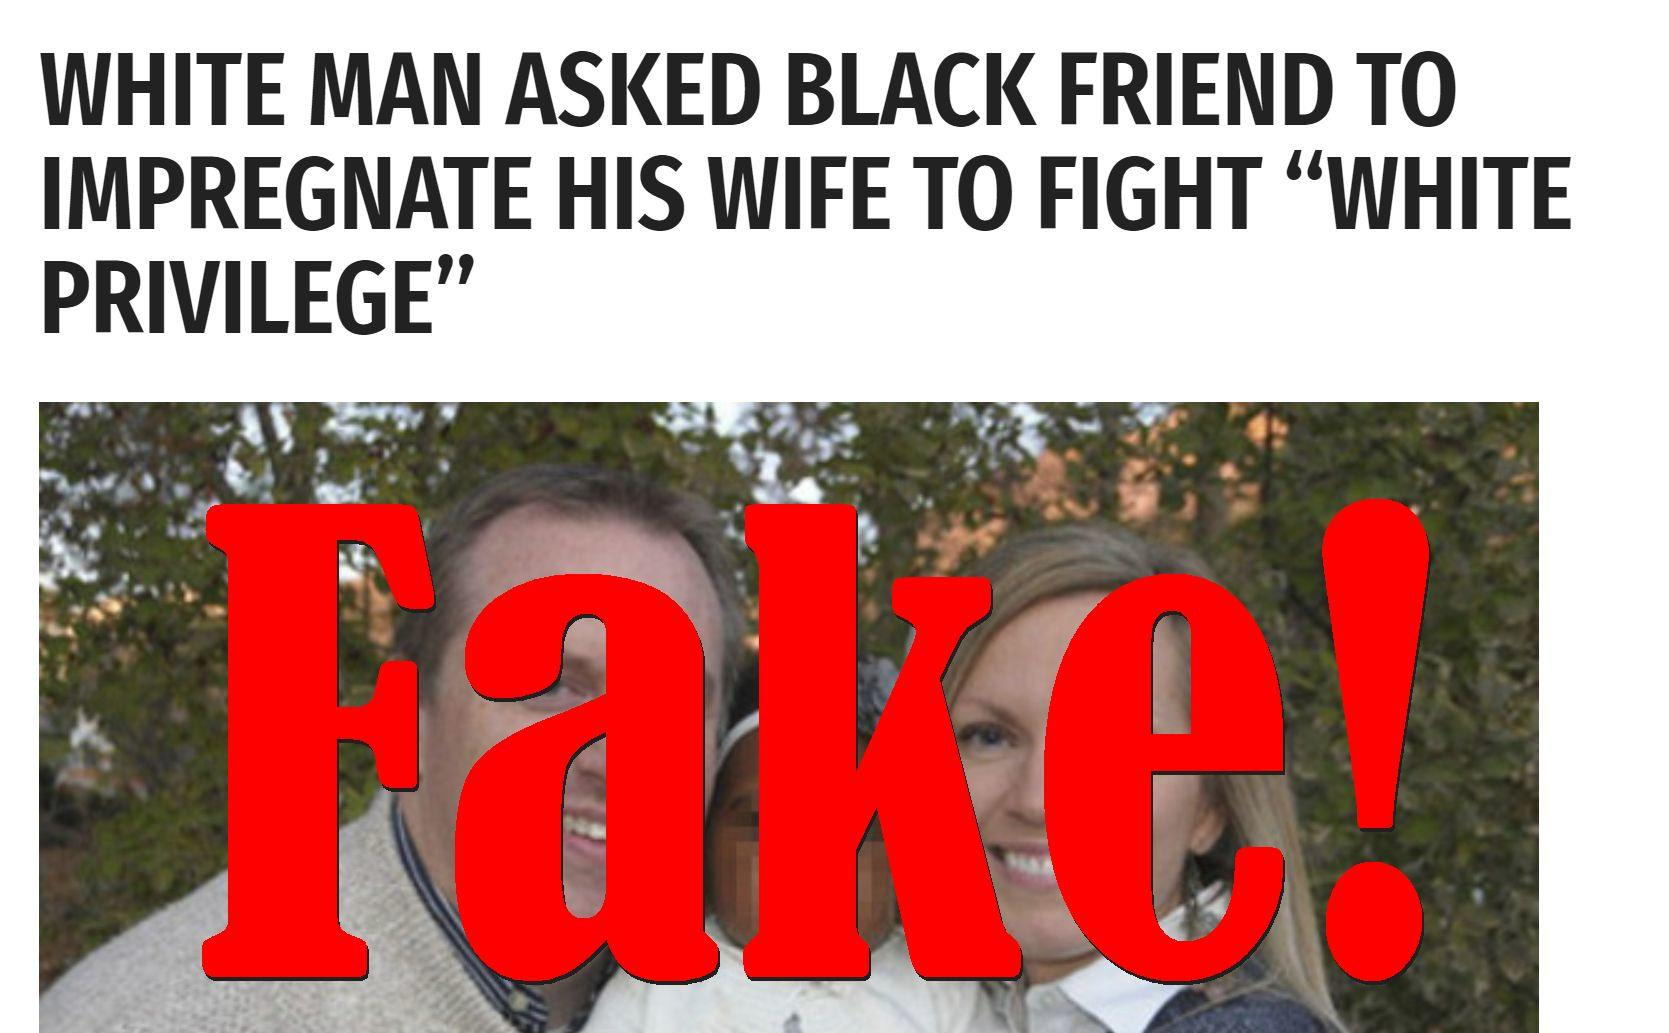 Fake News: White Man Did NOT Ask Black Friend To Impregnate His Wife To Fight White Privilege